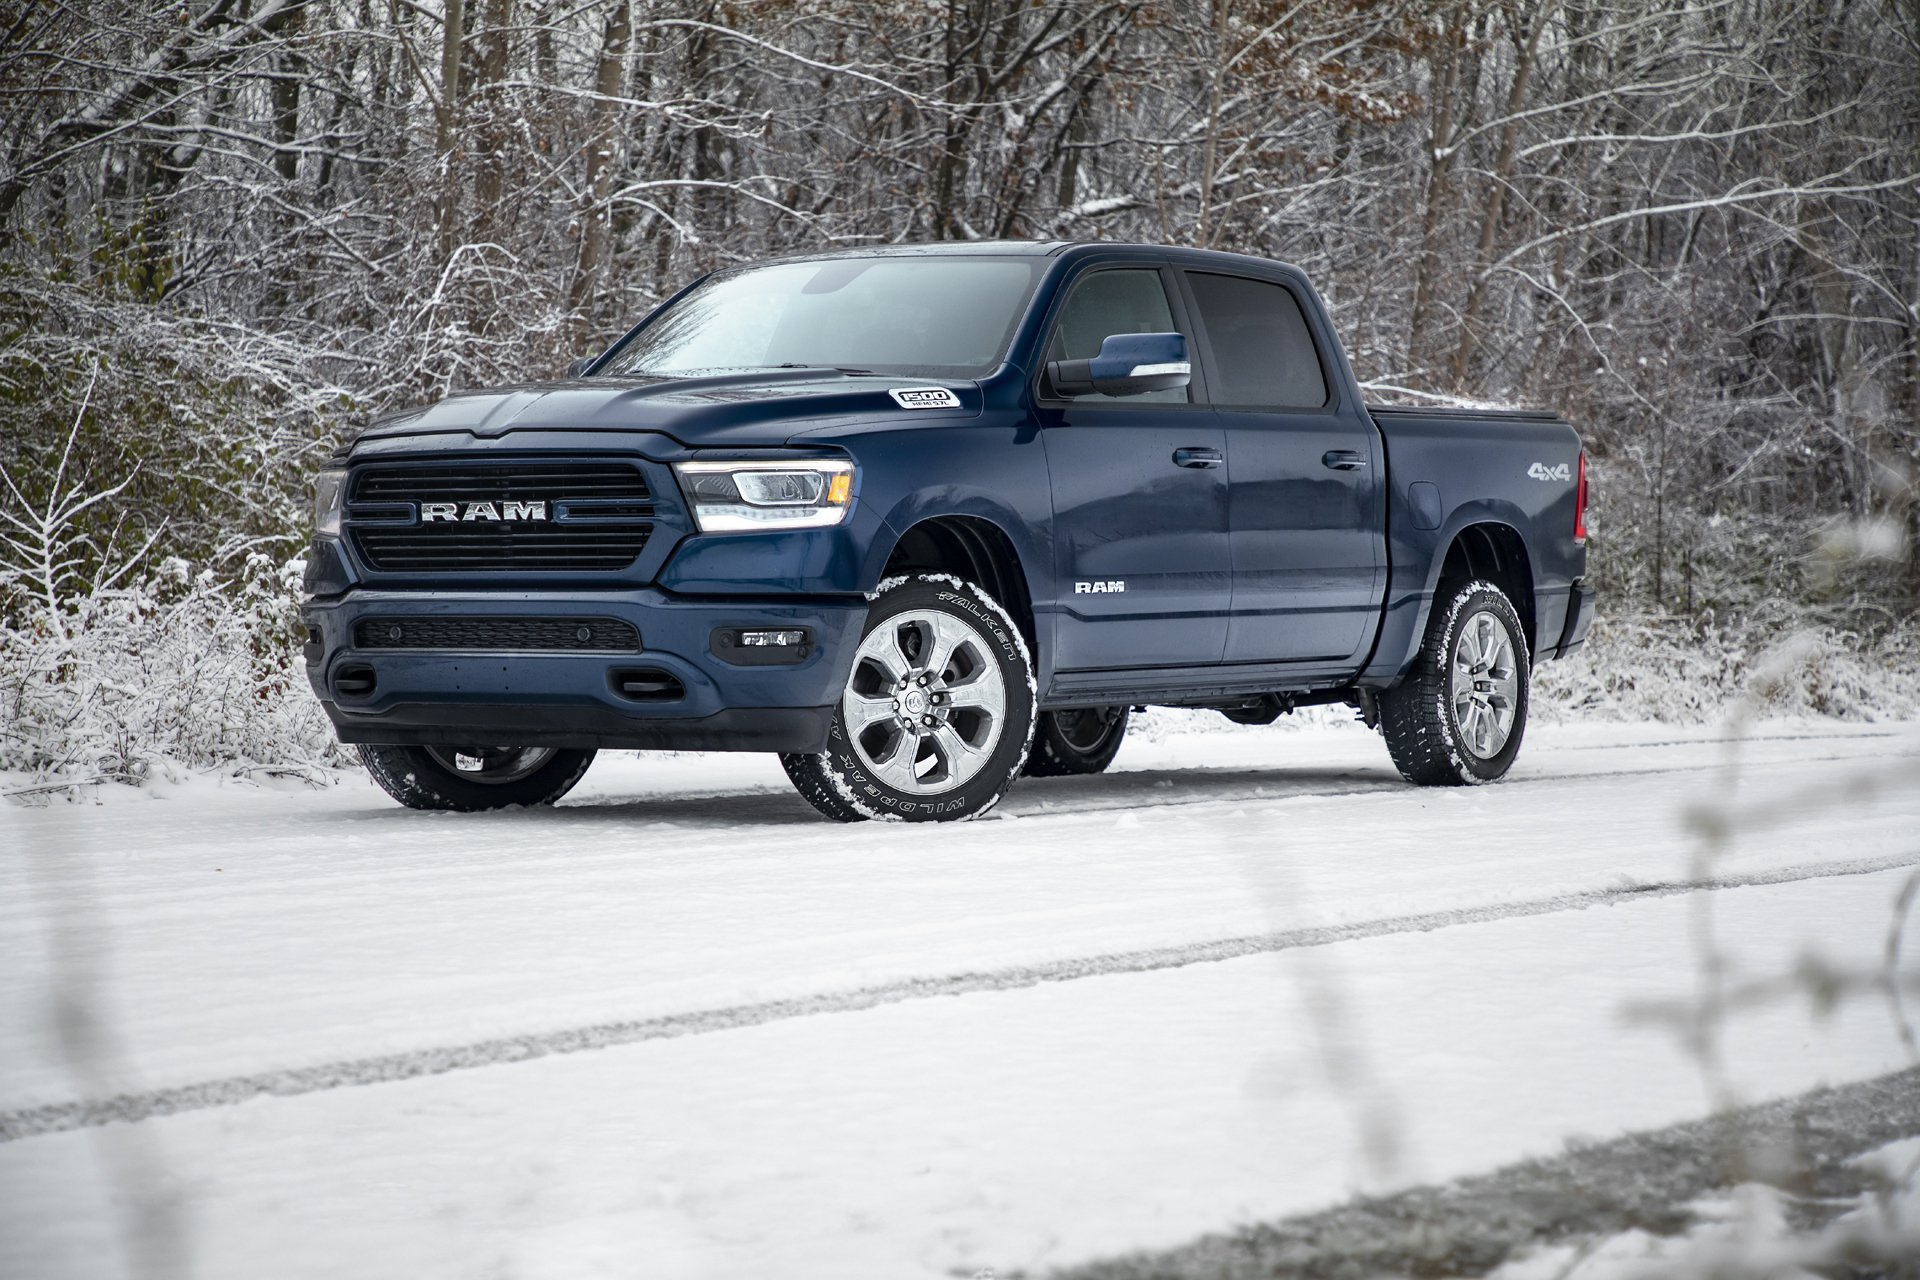 2019 Ram 1500 North Edition Features Factory Lift Kit